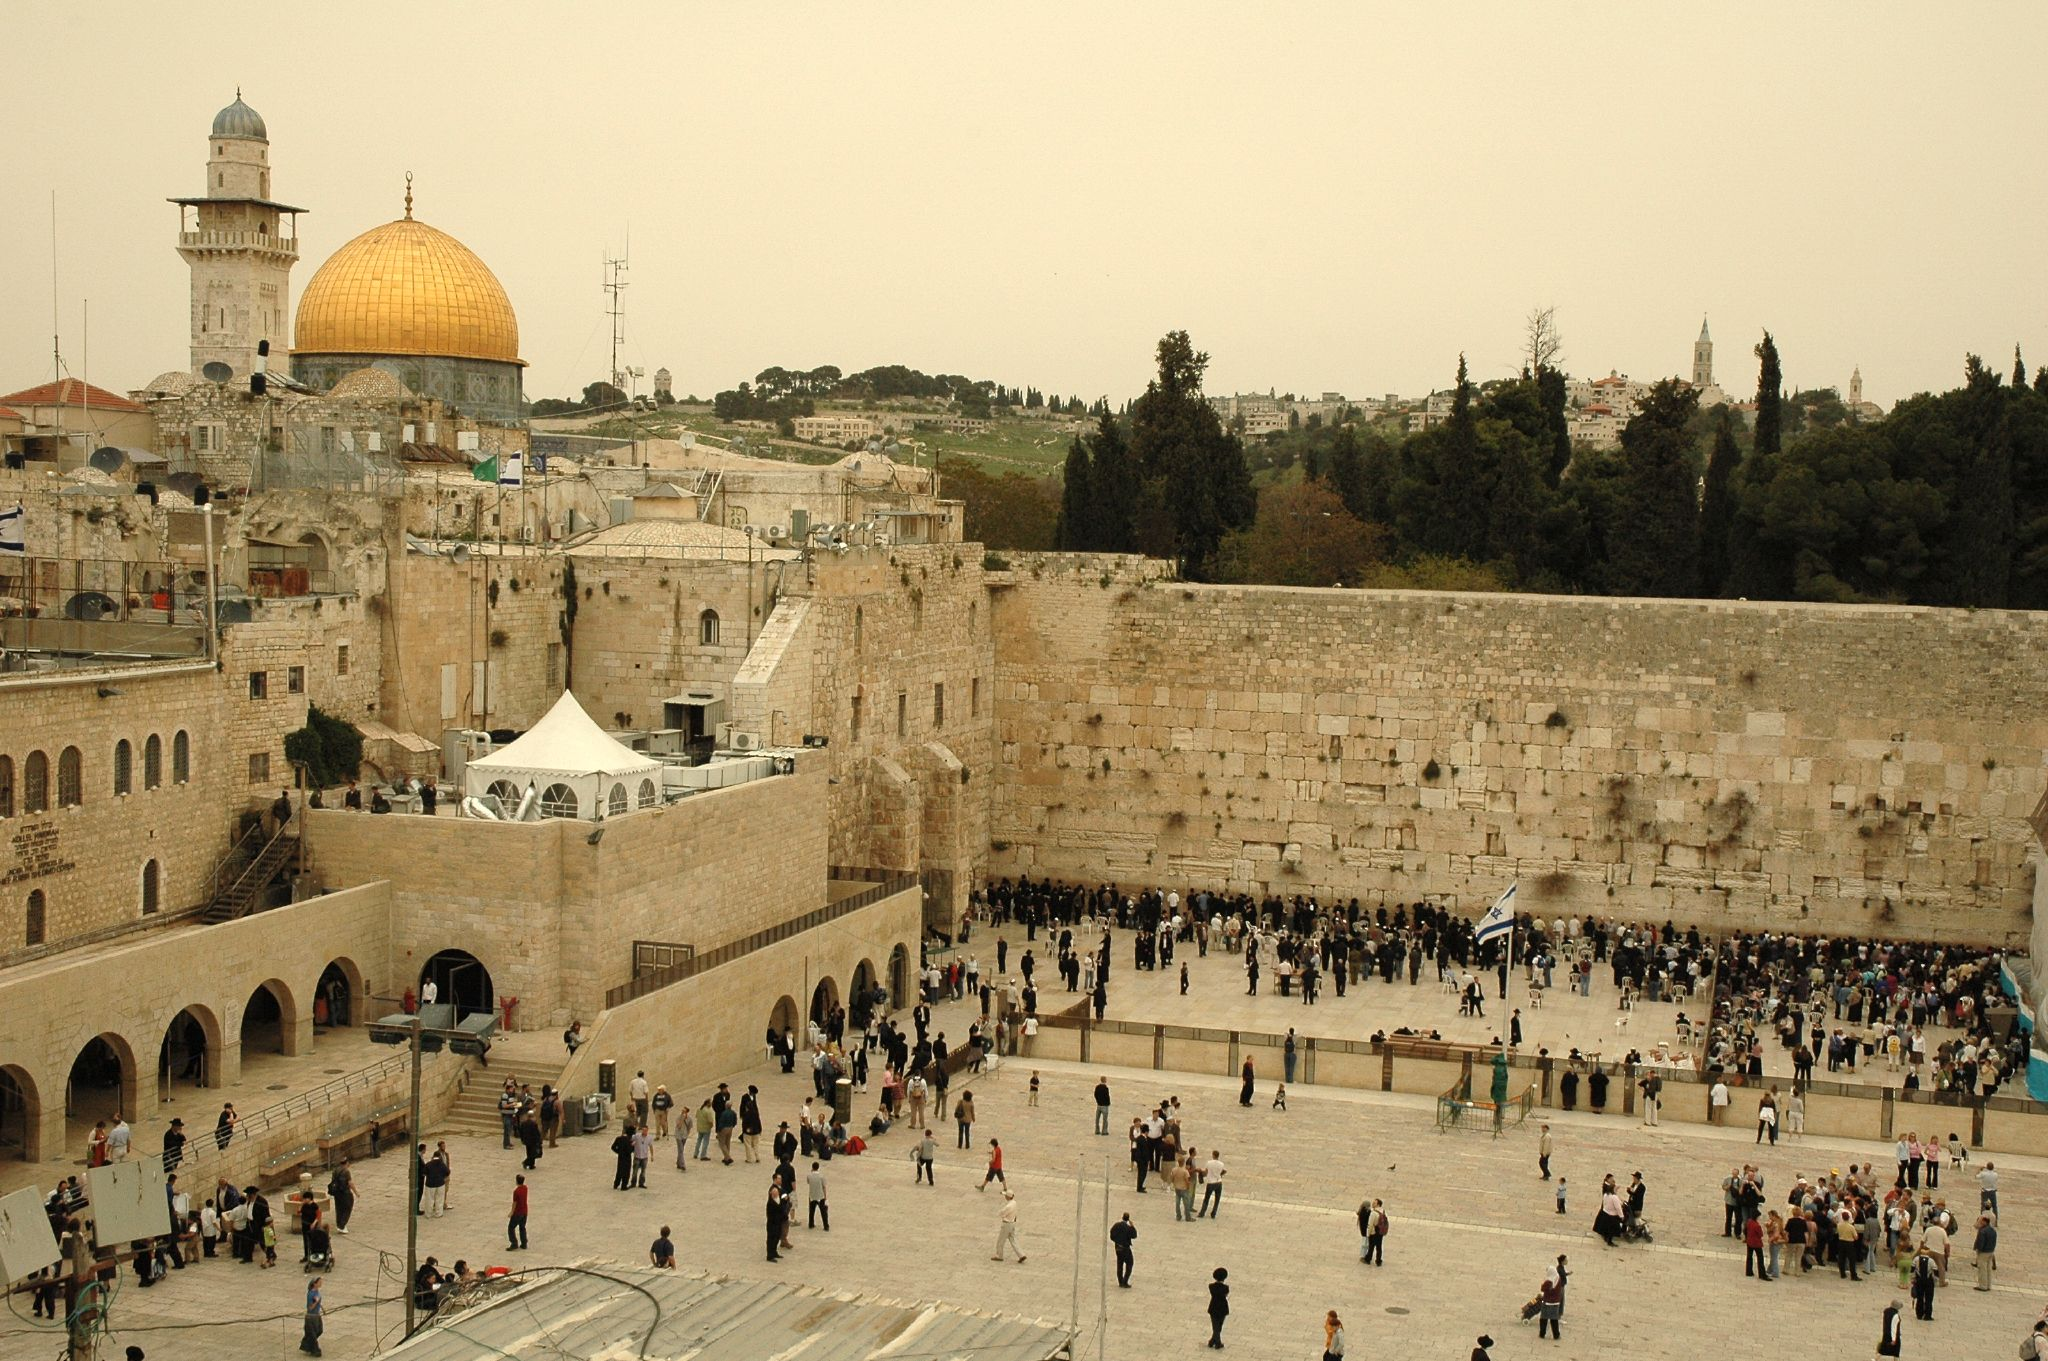 Dome of the Rock and Wailing Wall